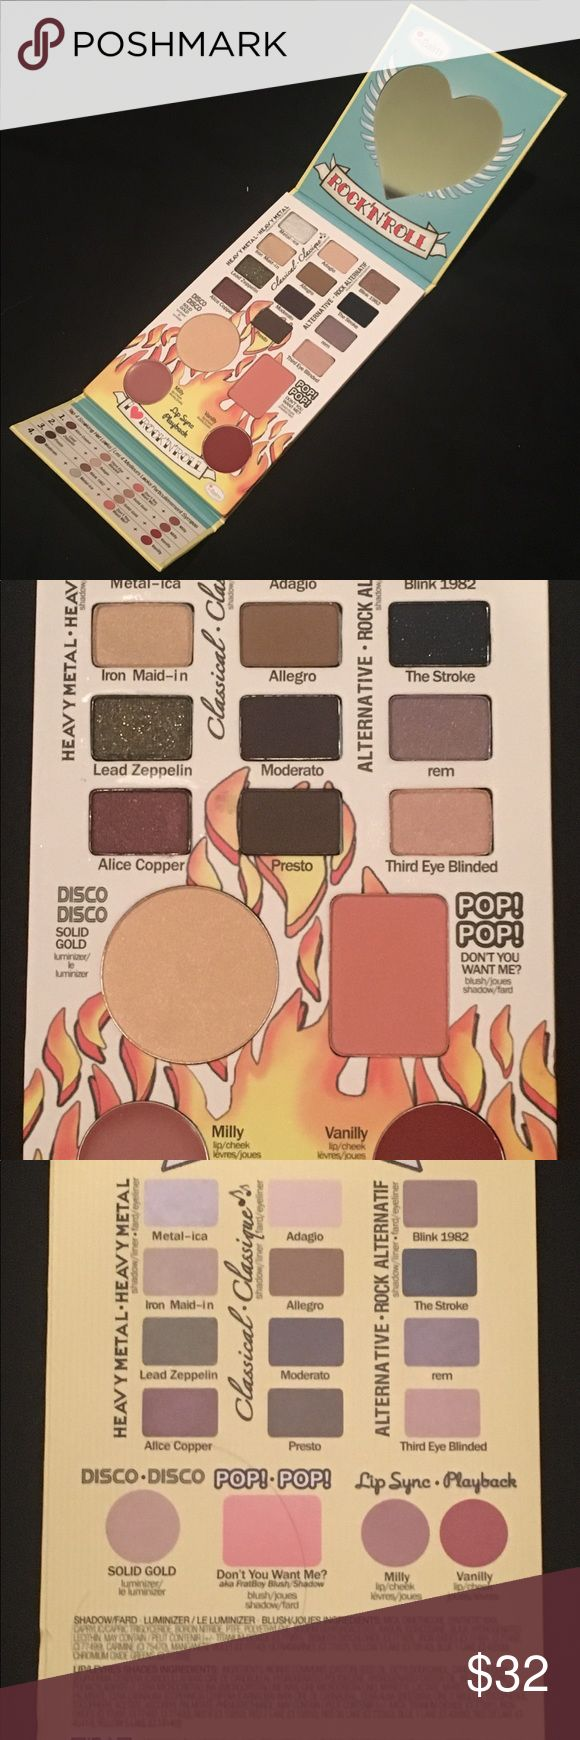 New! theBalm Balm Jovi Rockstar Palette New in Box- Never Opened! This is the authentic, full size product.   Includes: 12 Eyeshadows, 1 Blush, 1 Luminizer, and 2 Lip/Cheek Stains  Feel free to make an offer or add to a bundle for savings. theBalm Makeup Eyeshadow